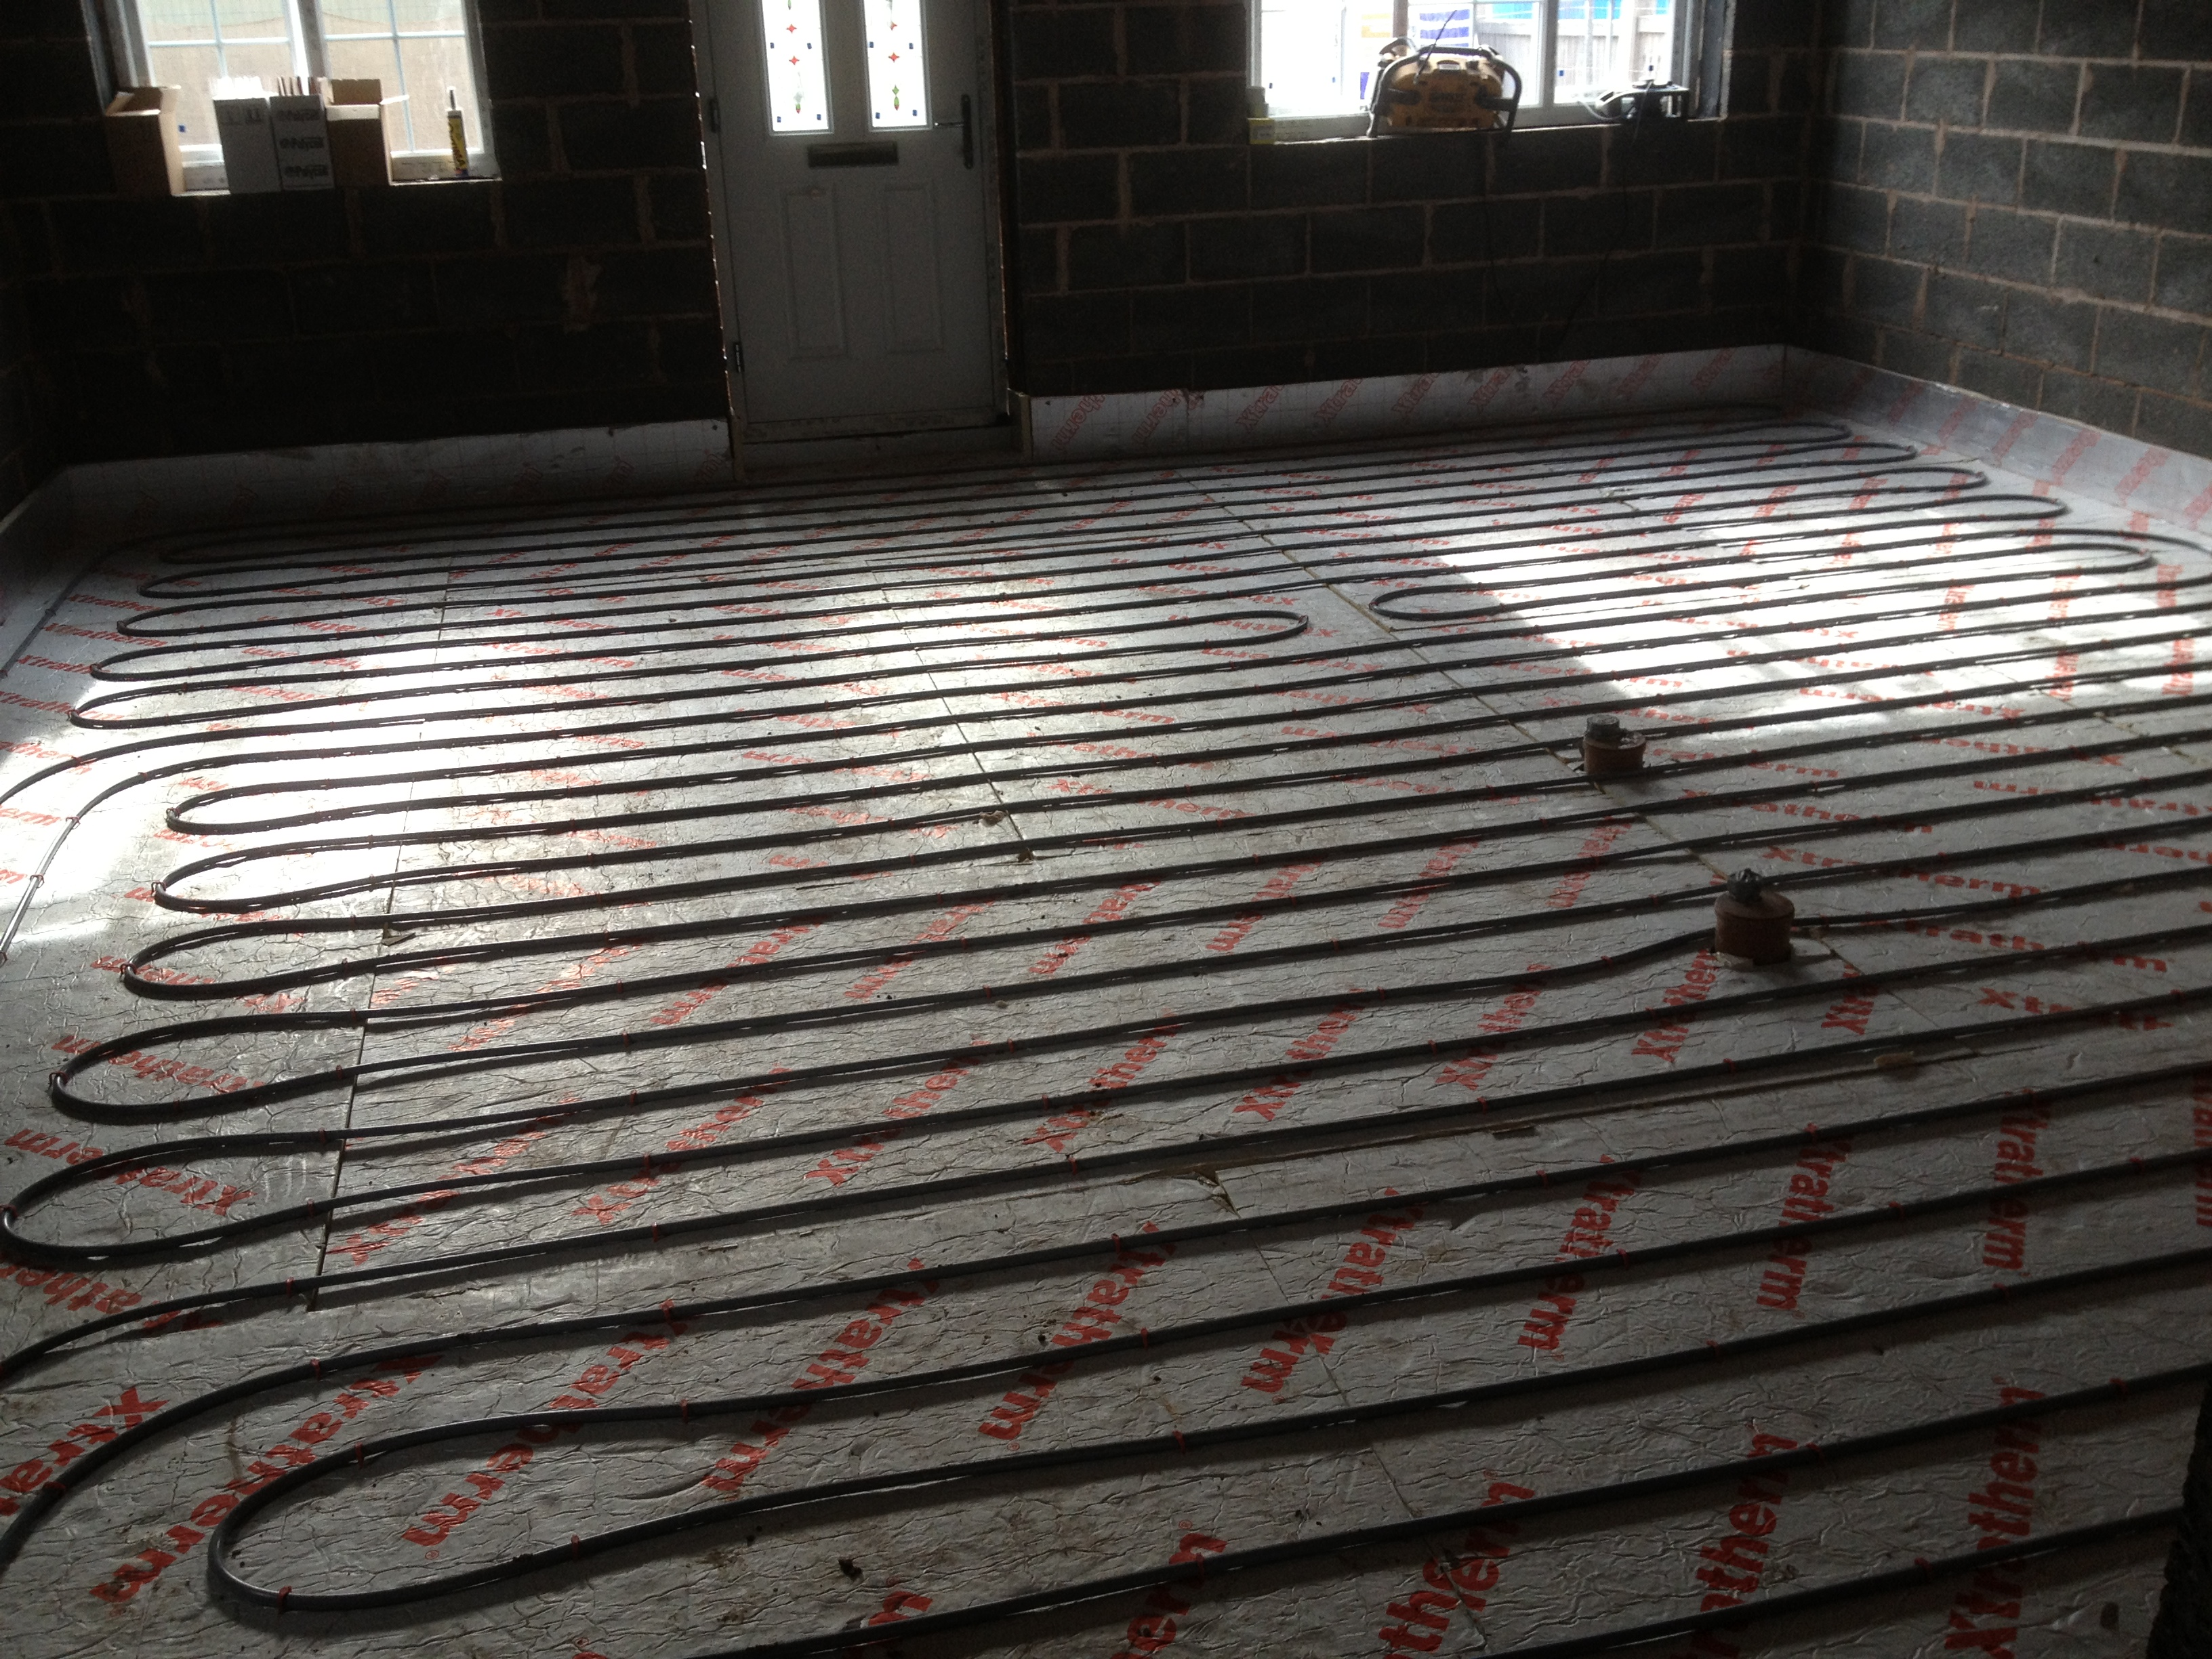 Underfloor Heating.JPG